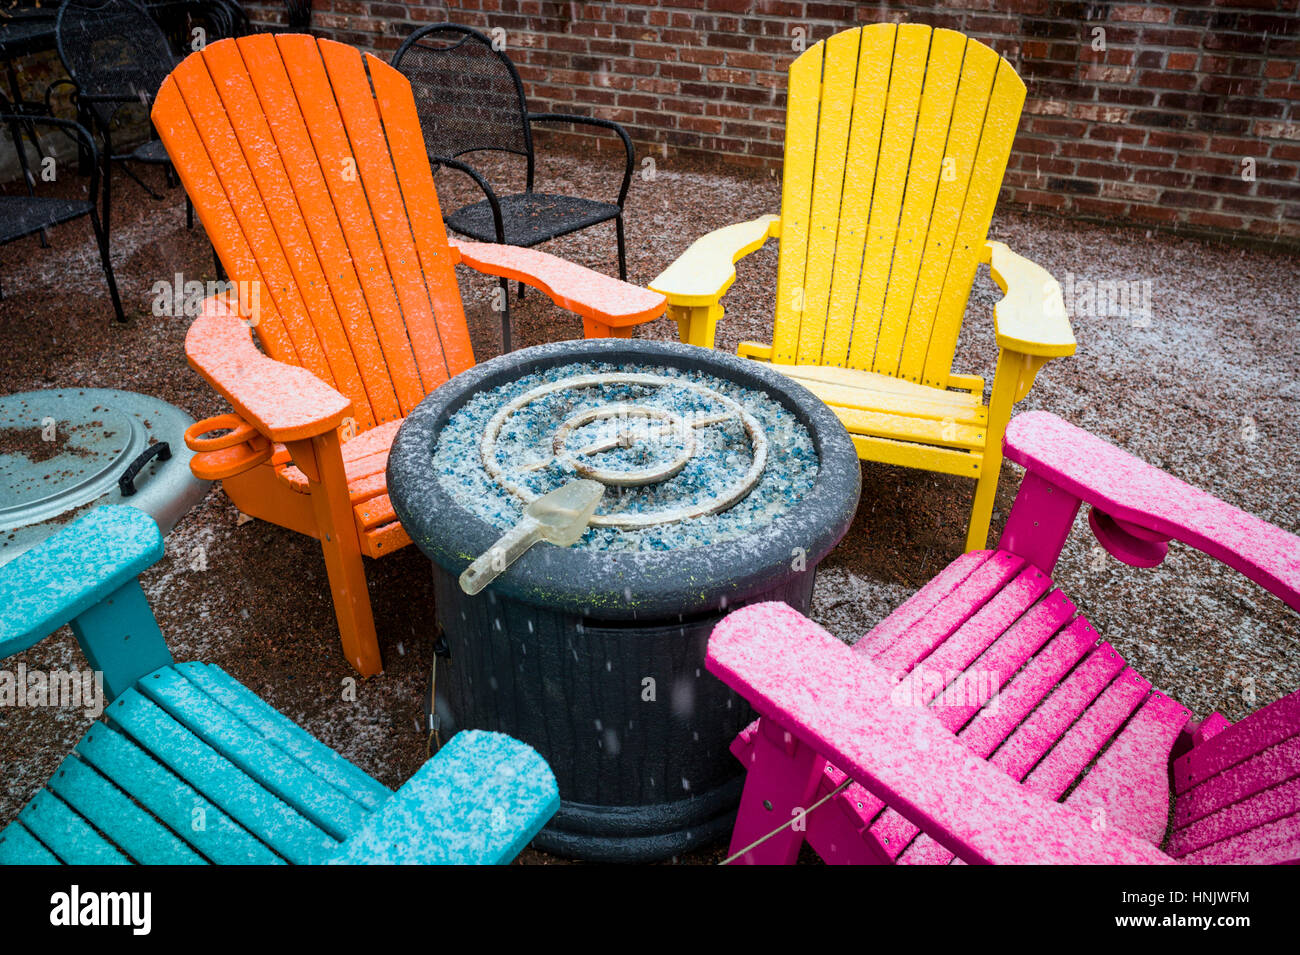 Colorful outdoor chairs in snow on patio of Boathouse Cantina restaurant; Salida; Colorado: USA - Stock Image